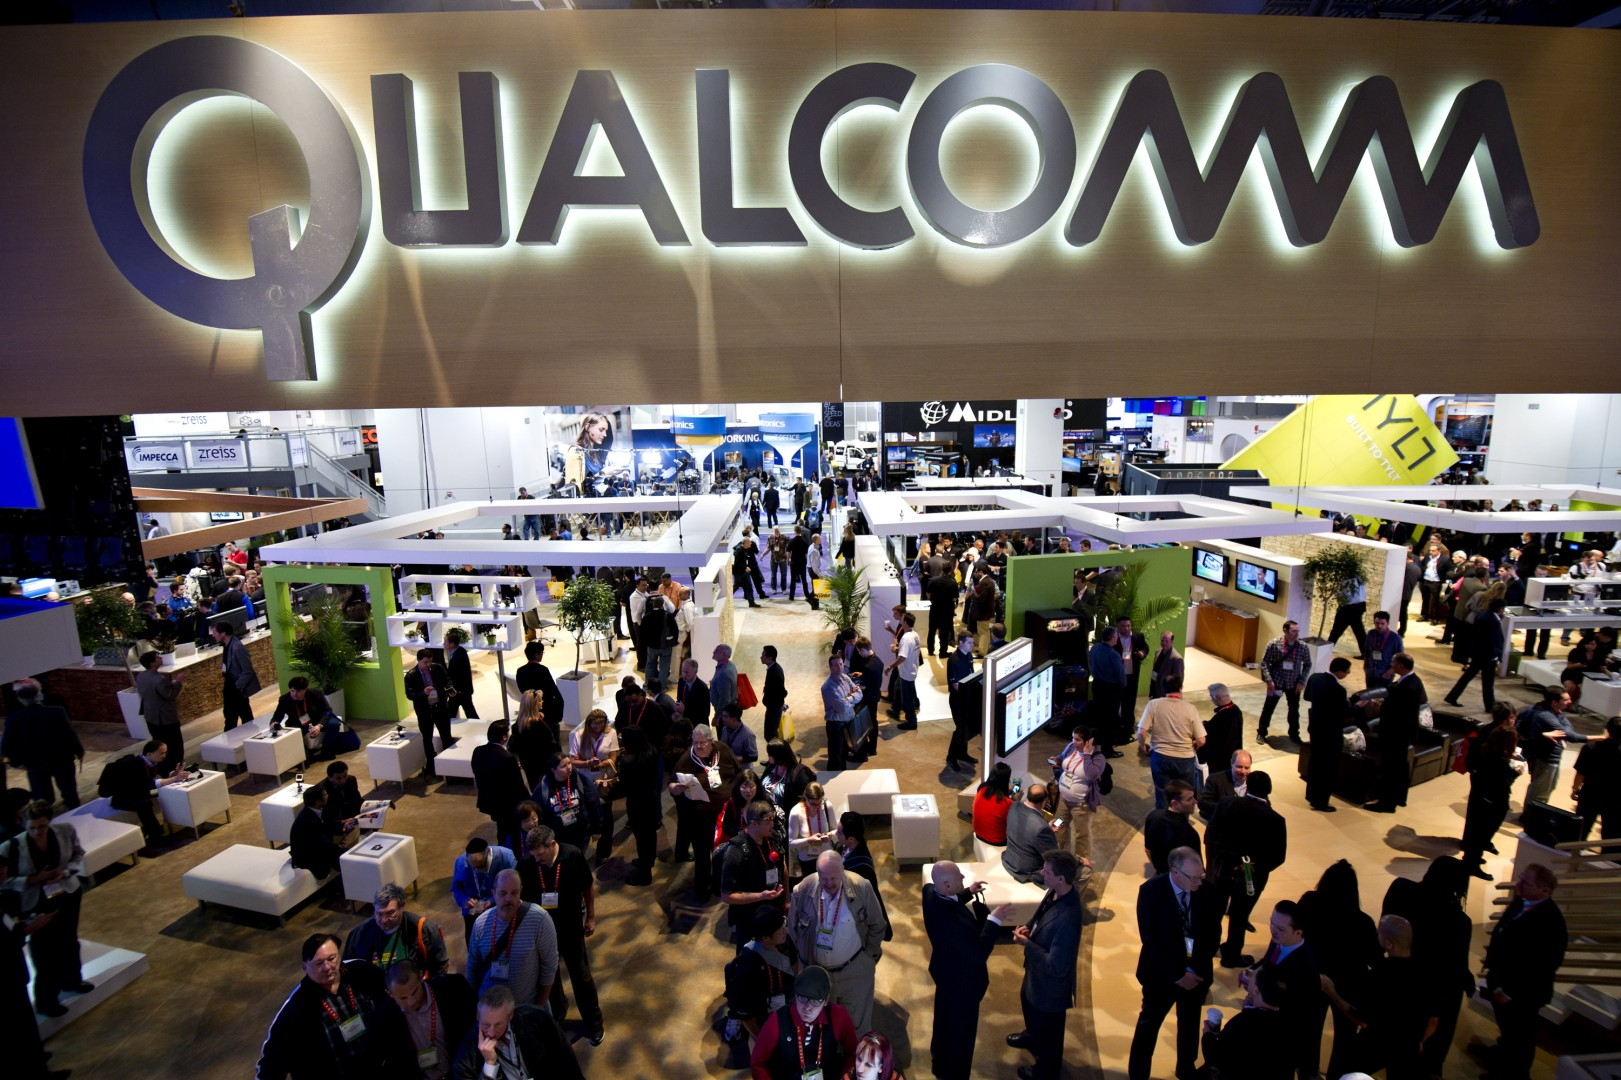 Qualcomm's sales forecast shows that China's smartphone market is on